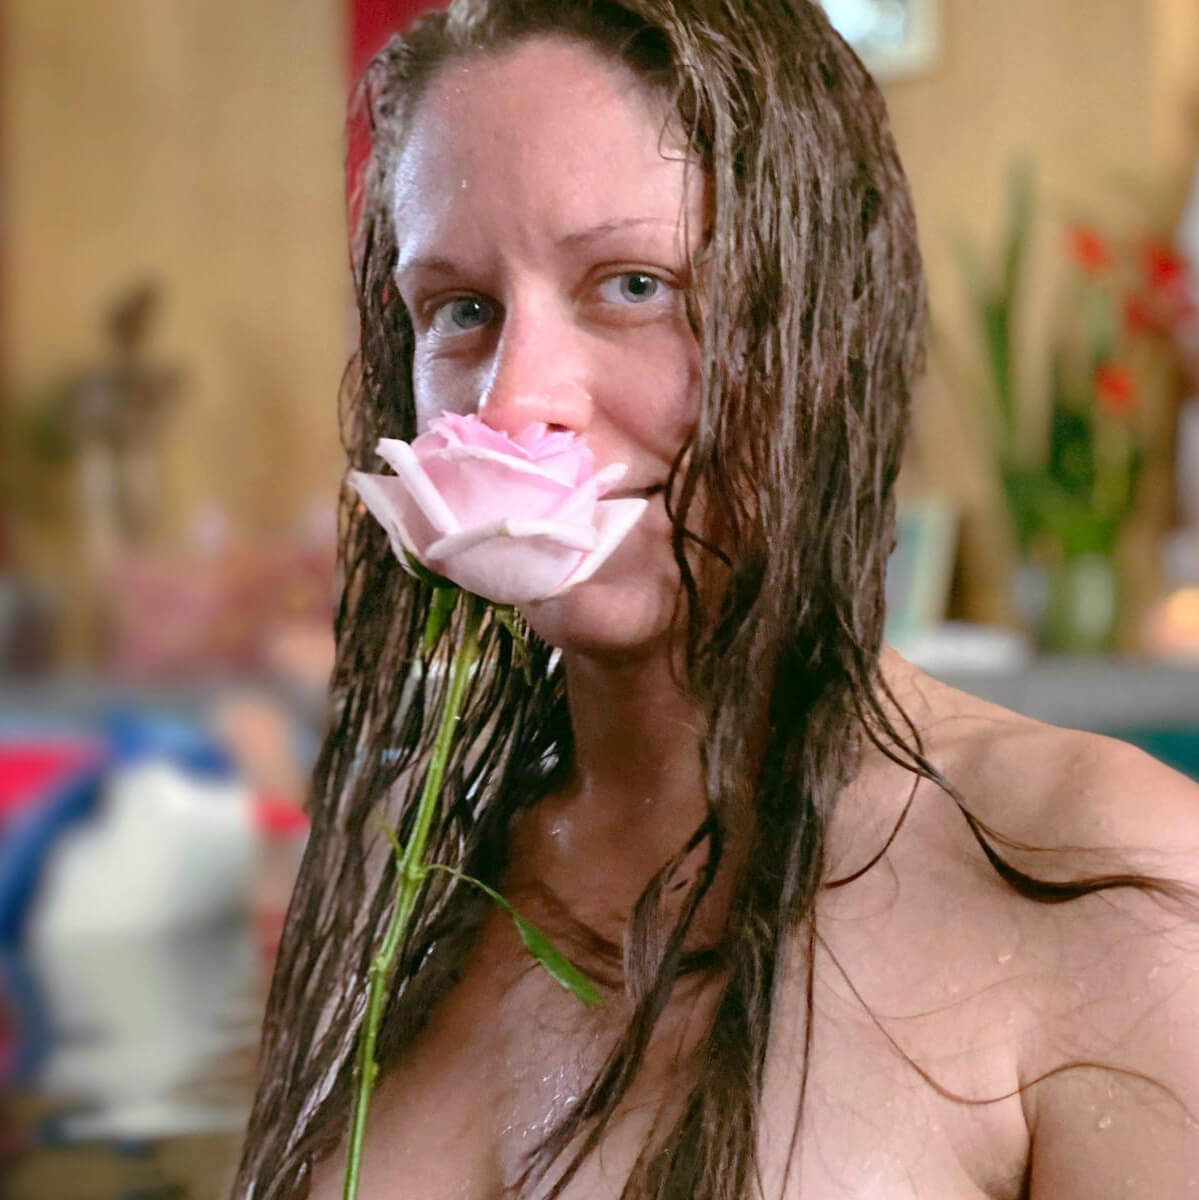 Woman wet with flower in front of her face